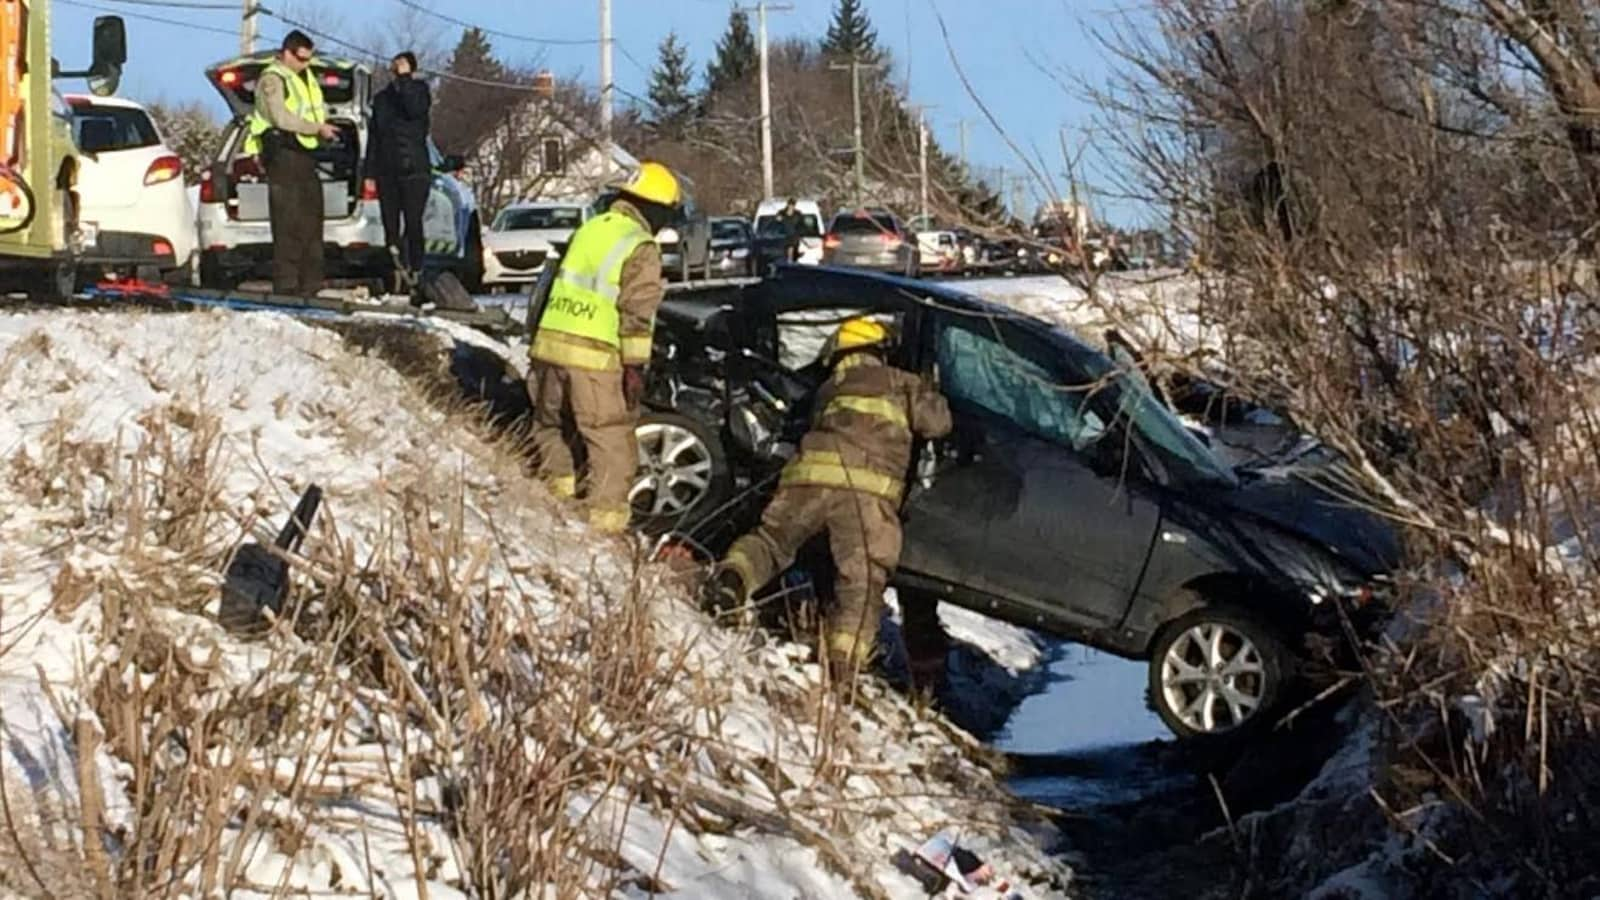 Accident mortel sur la route 122 le 18 mars 2016 à Saint-Edmond-de-Grantham